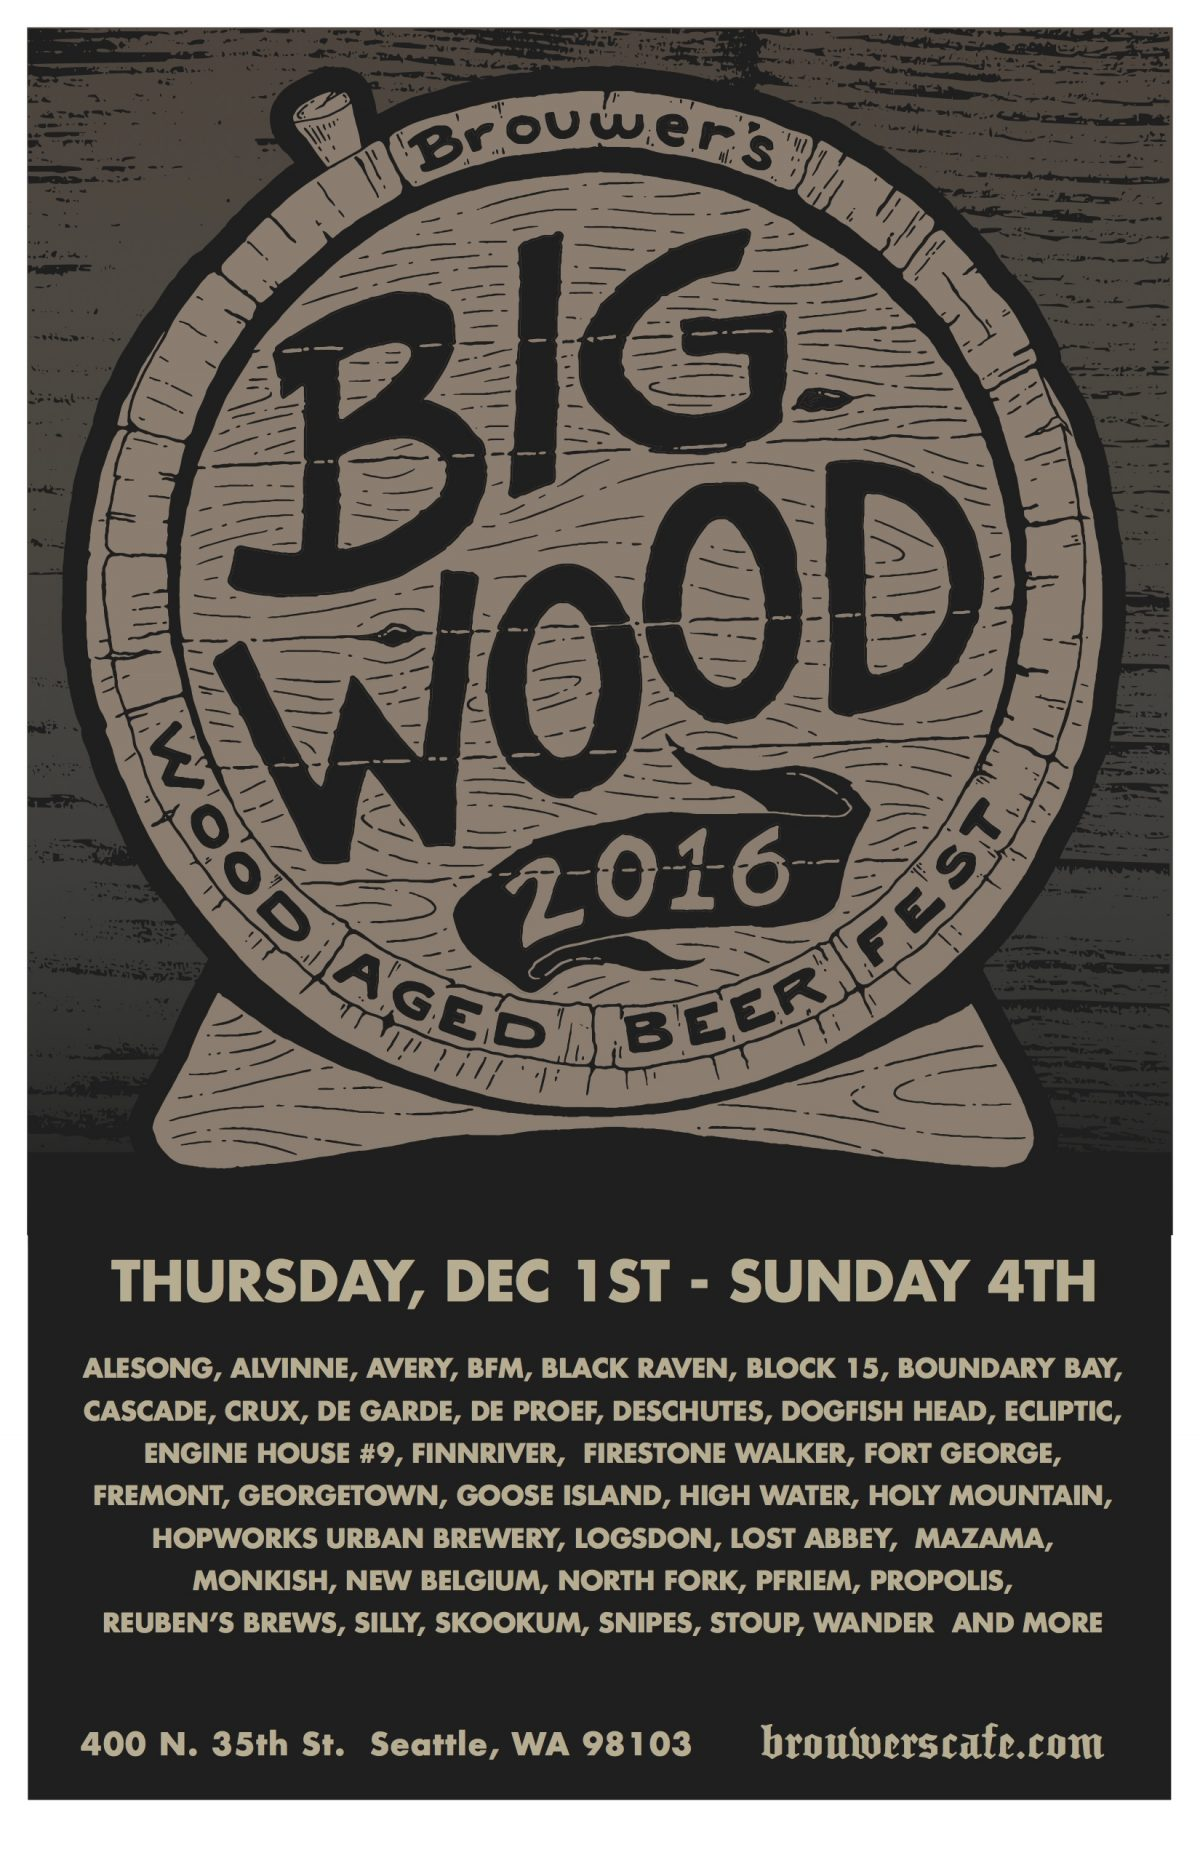 Bigwood Festival Starts December 1st @ 11am